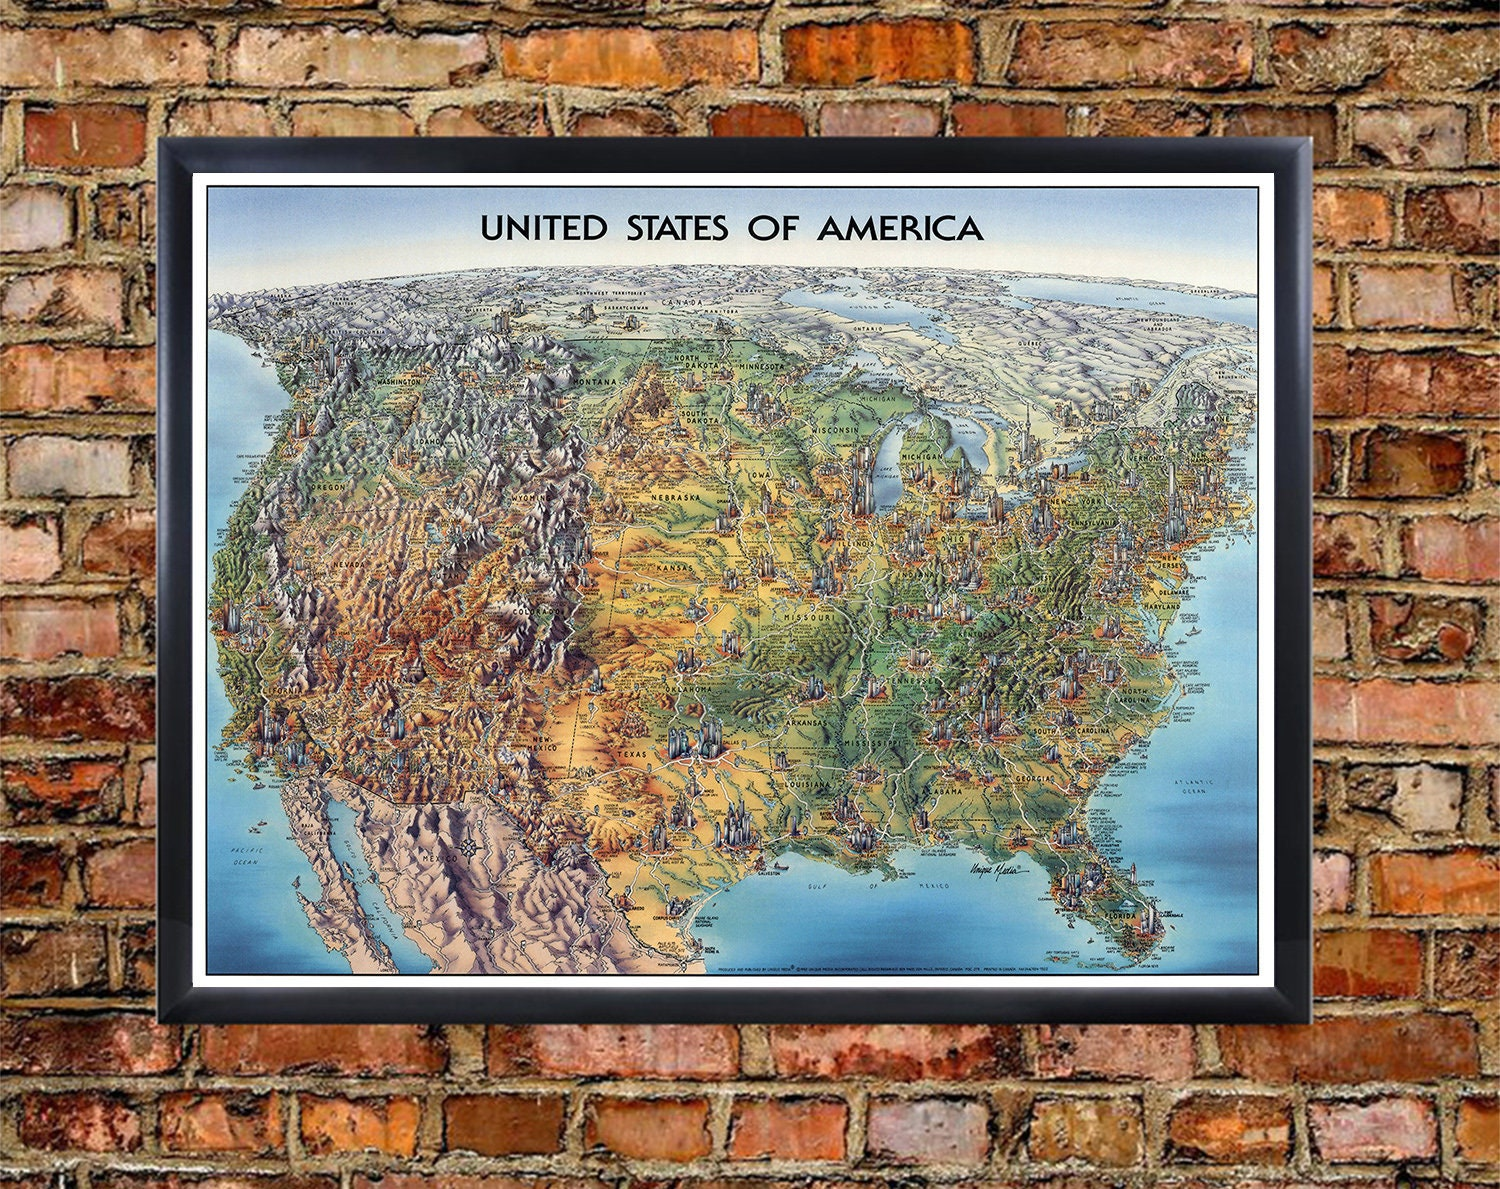 US Map Art Print - United States Map Poster, Large Map of USA Art Print Geographical Map Of The United States on geographical map of papua new guinea, geographical map of western us, geographic location of united states, exact center of the united states, map of england and united states, map of northern canada and united states, terrain united states, road map of northwestern united states, organized incorporated territories of the united states, subtropical area of the united states, geographical map of texas, the region of northeast united states, northern border of the united states, map of caribbean islands and united states, member nations of the united states, physical geography map united states, geographical map of malaysia, map of eastern united states, geographical map of burma, ancient maps of the united states,